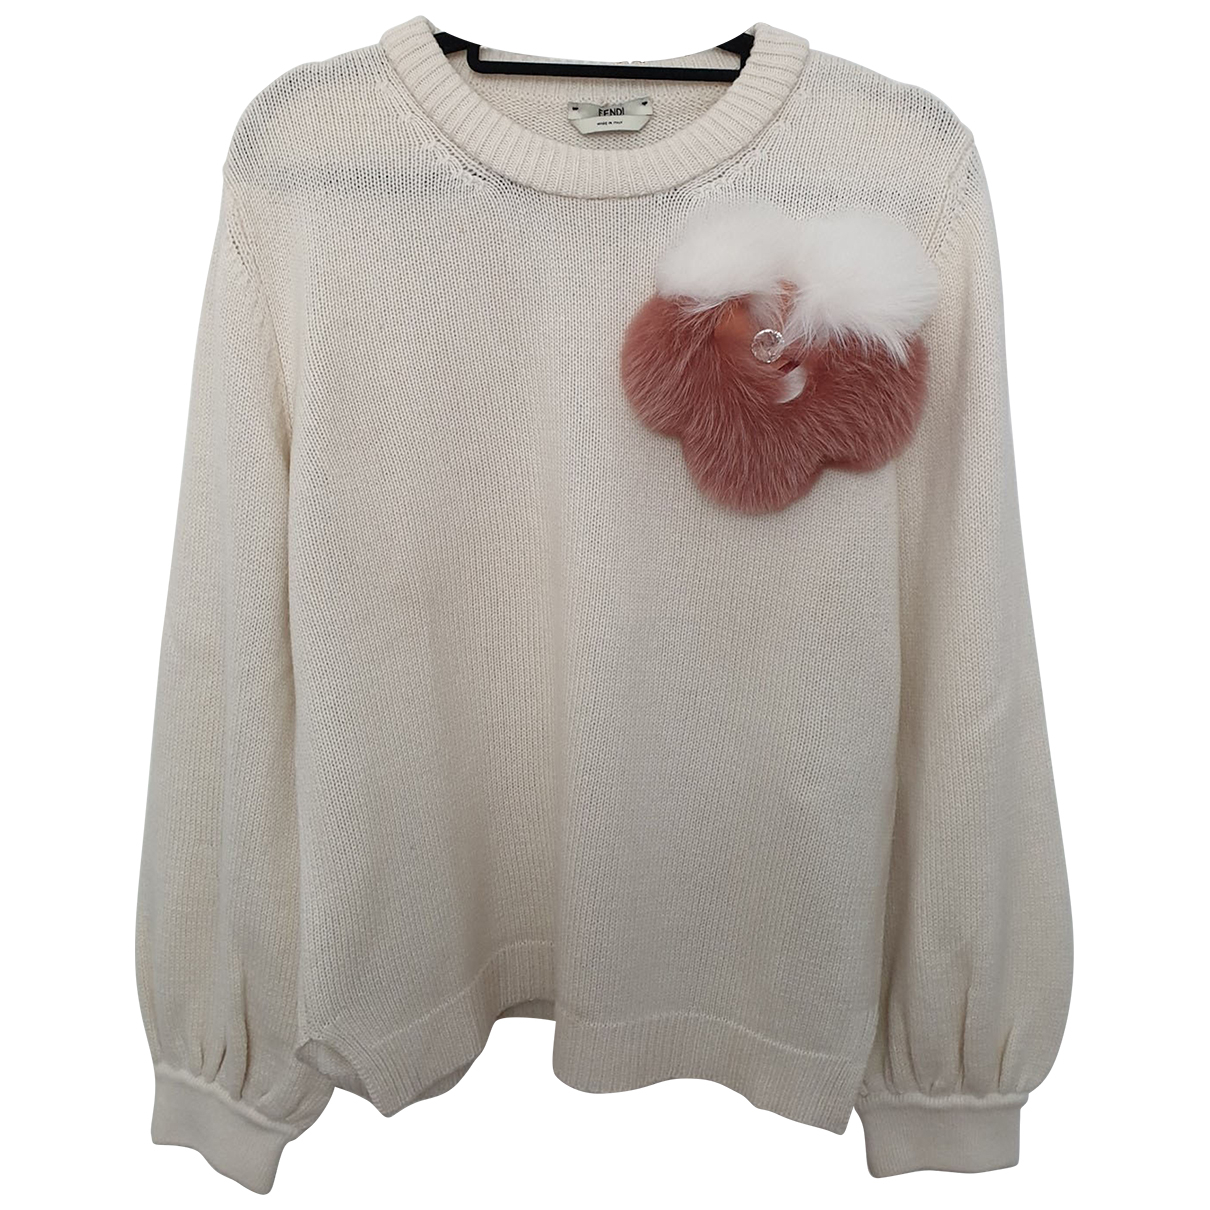 Fendi N Cashmere Knitwear for Women 44 IT